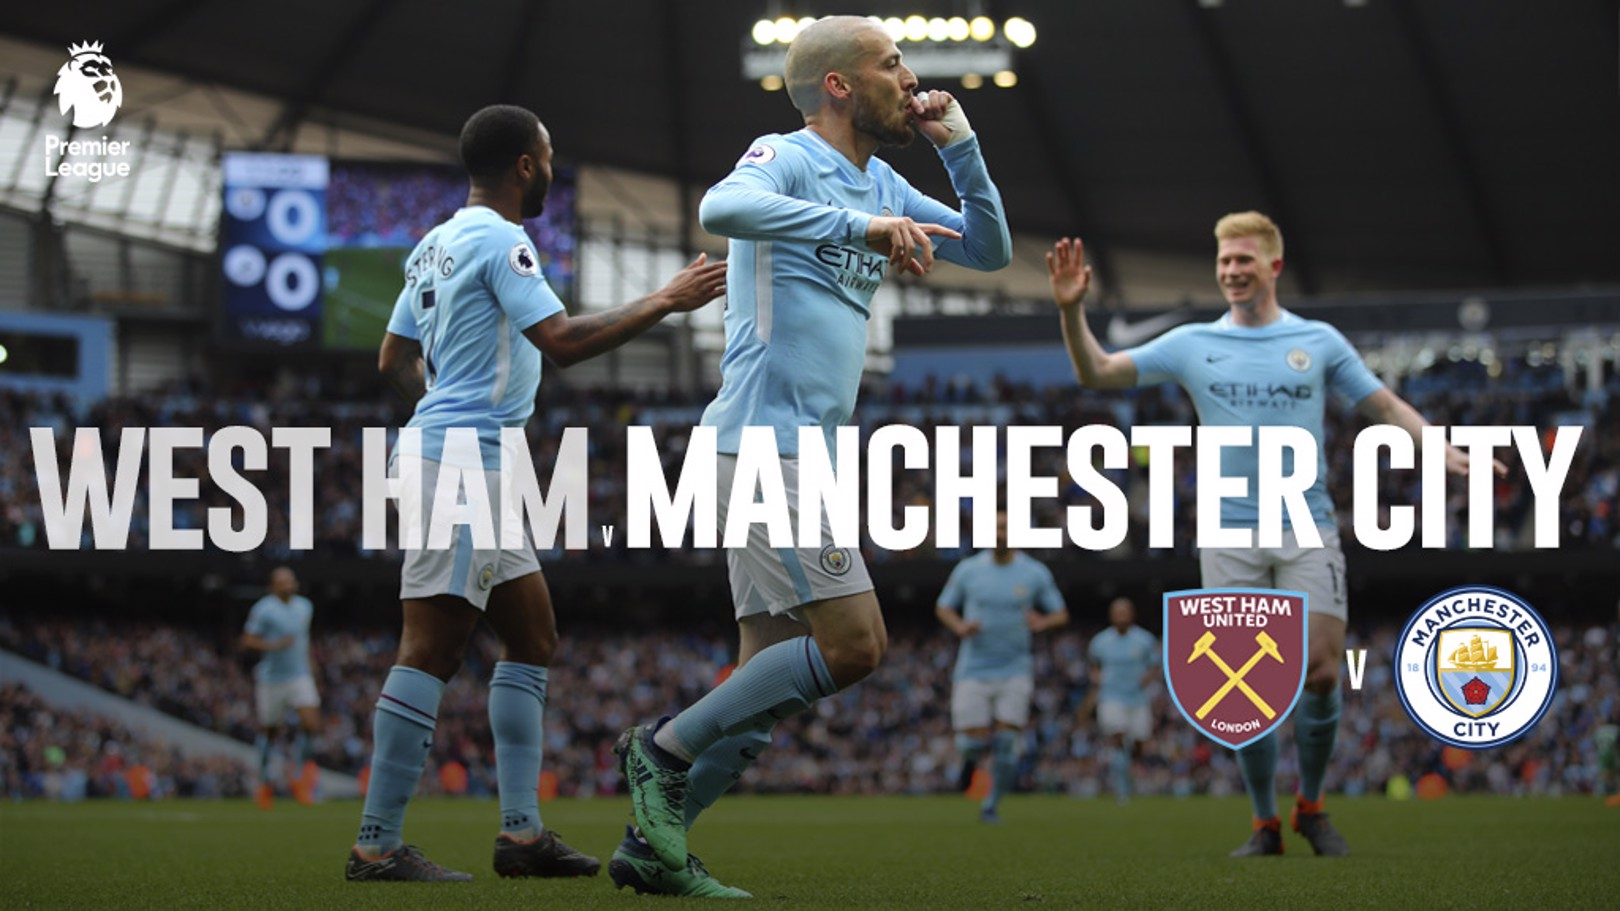 West Ham v City: LIVE!